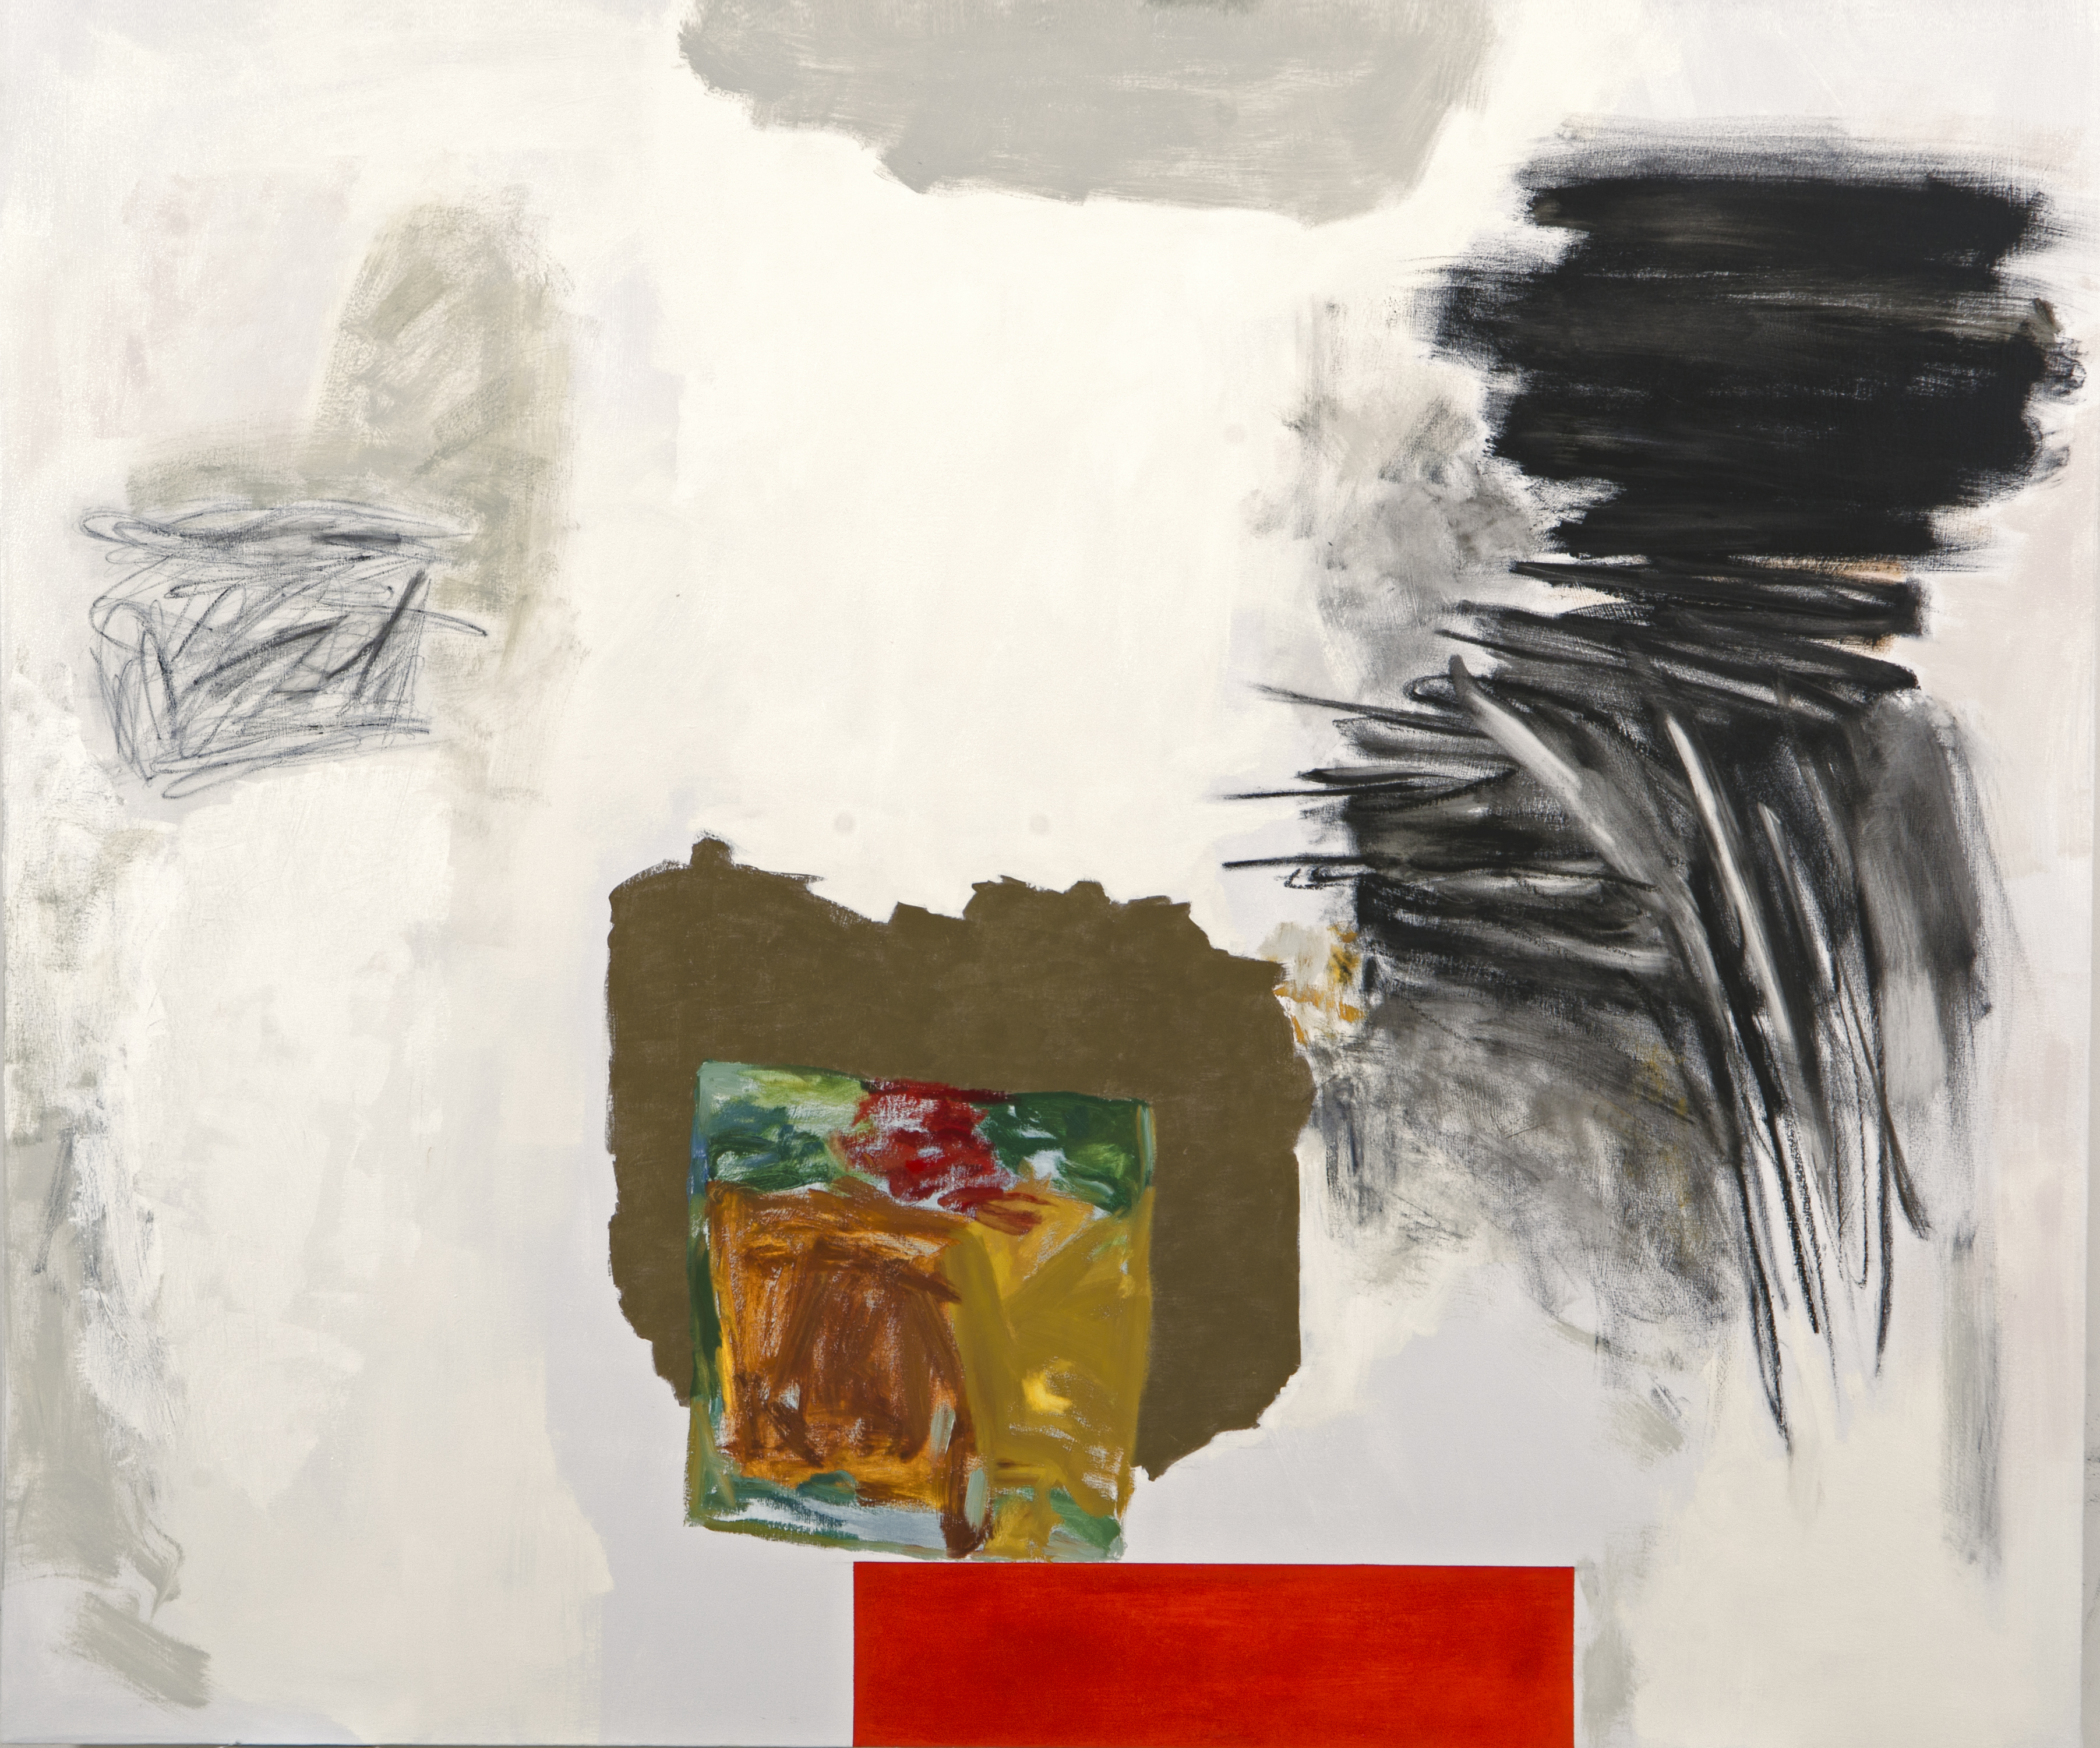 Rocio Rodriguez, Five Events, 2013, oil on canvas, 68 1/2 x 120 1/2 inches